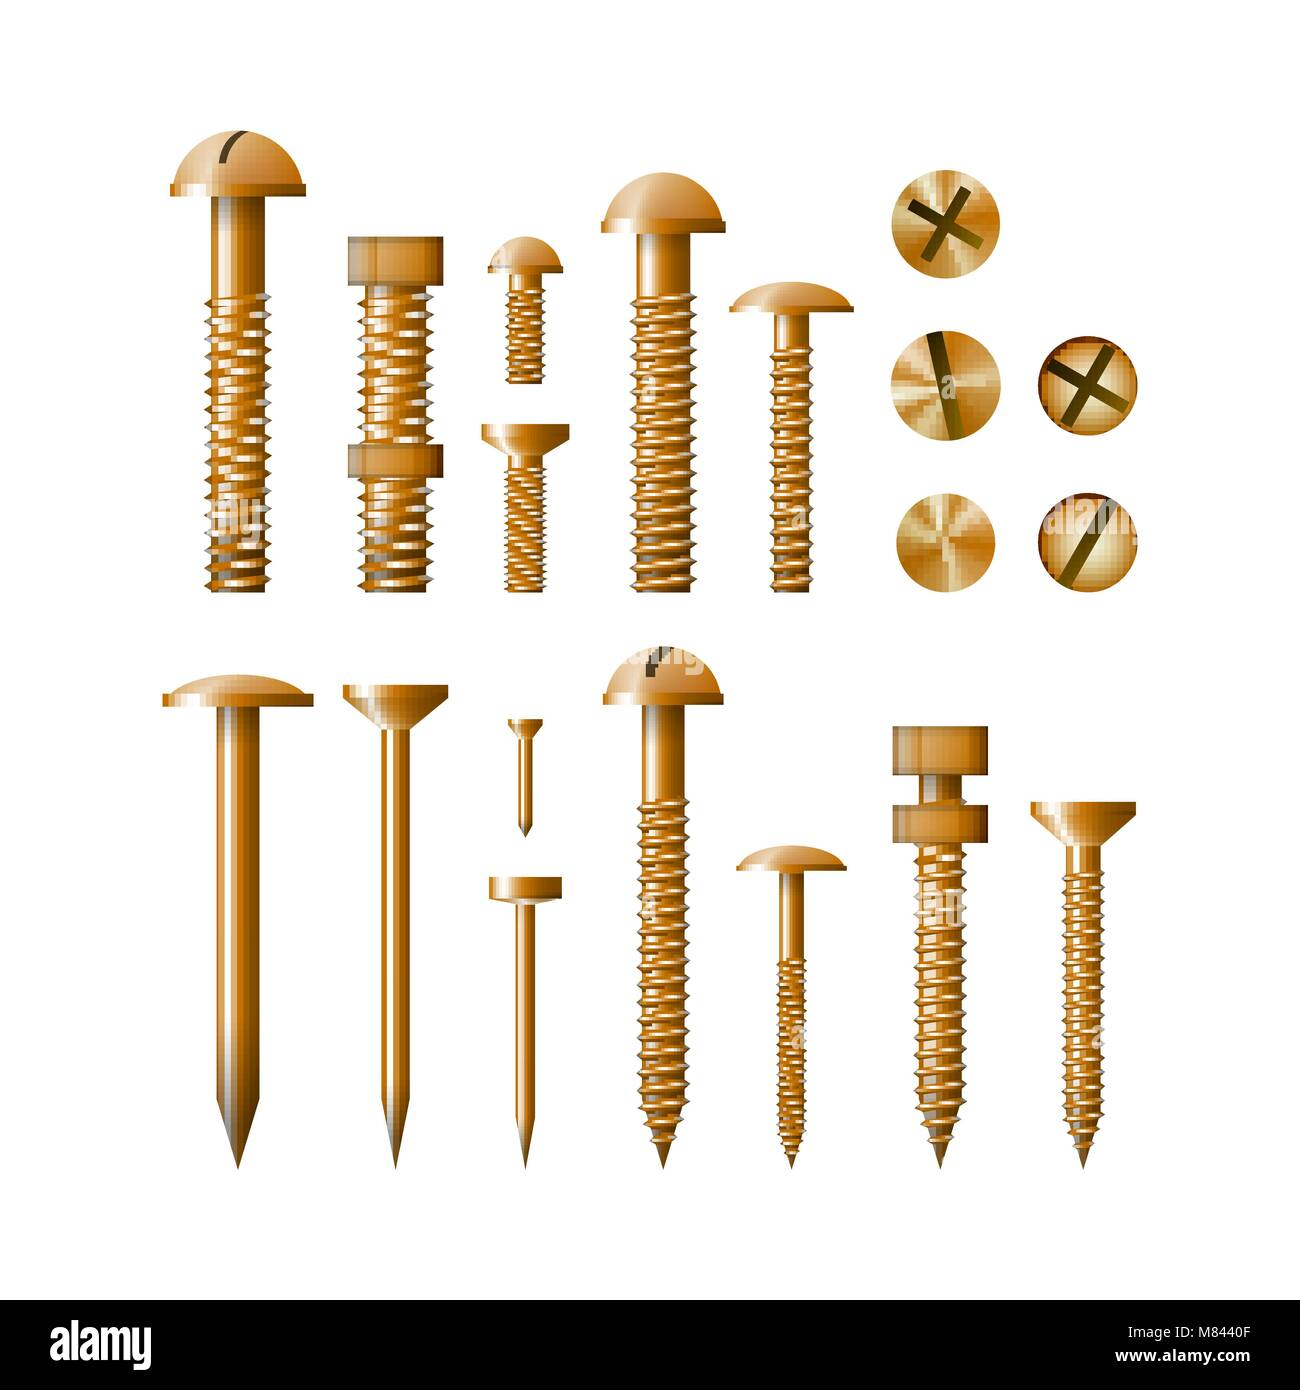 Set of fasteners Golden color vector illustration. A collection of tools. Screw, bolt, nut and nail. - Stock Image